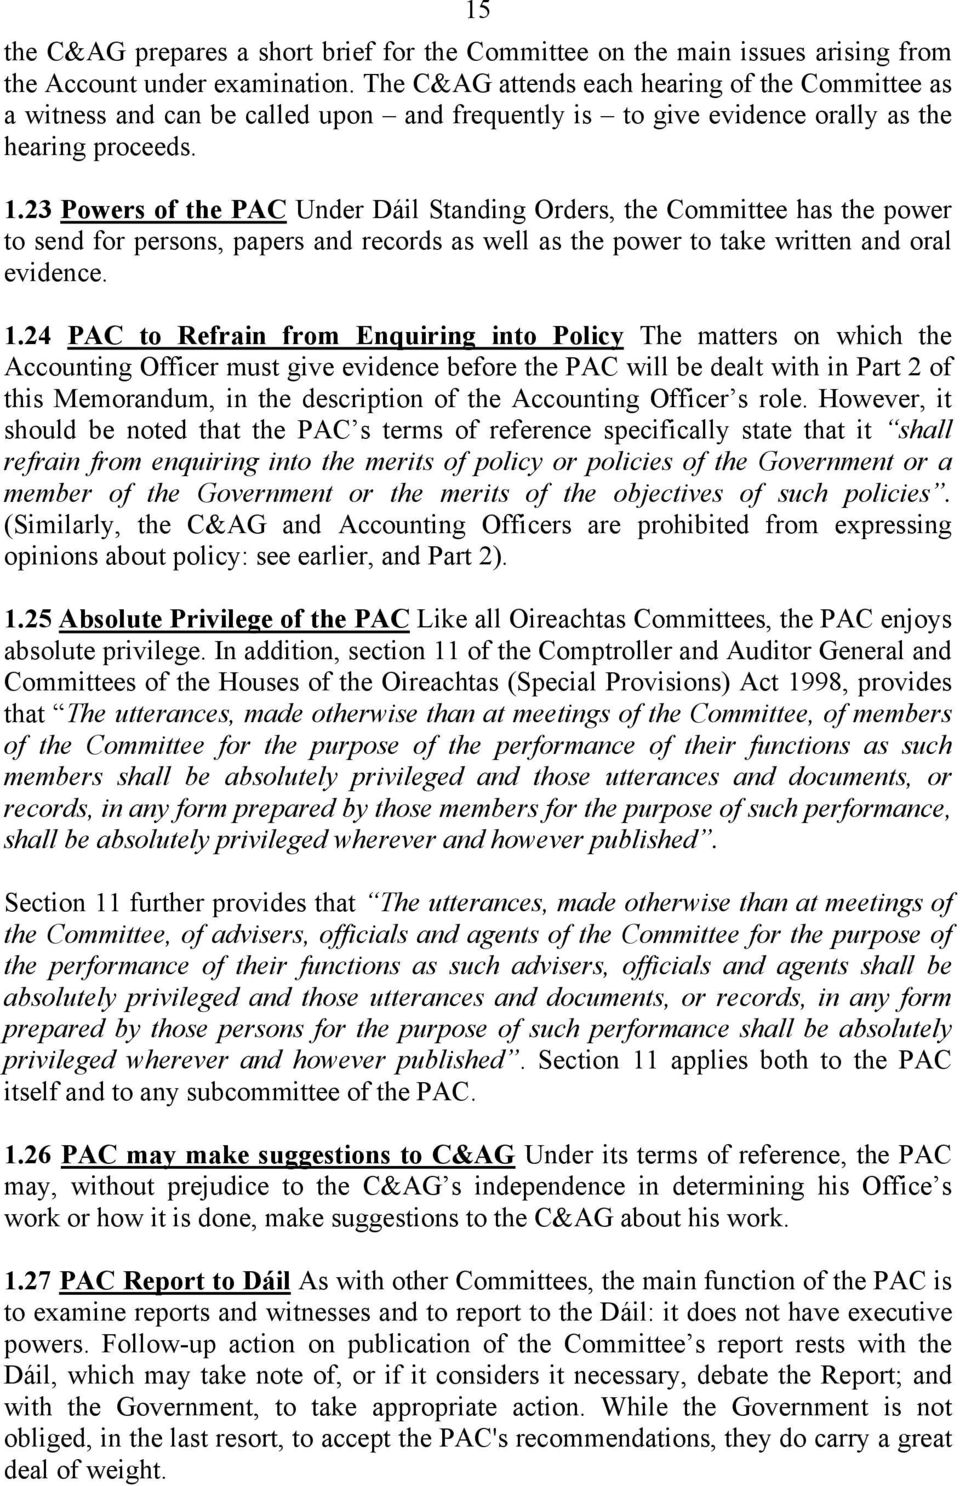 23 Powers of the PAC Under Dáil Standing Orders, the Committee has the power to send for persons, papers and records as well as the power to take written and oral evidence. 1.